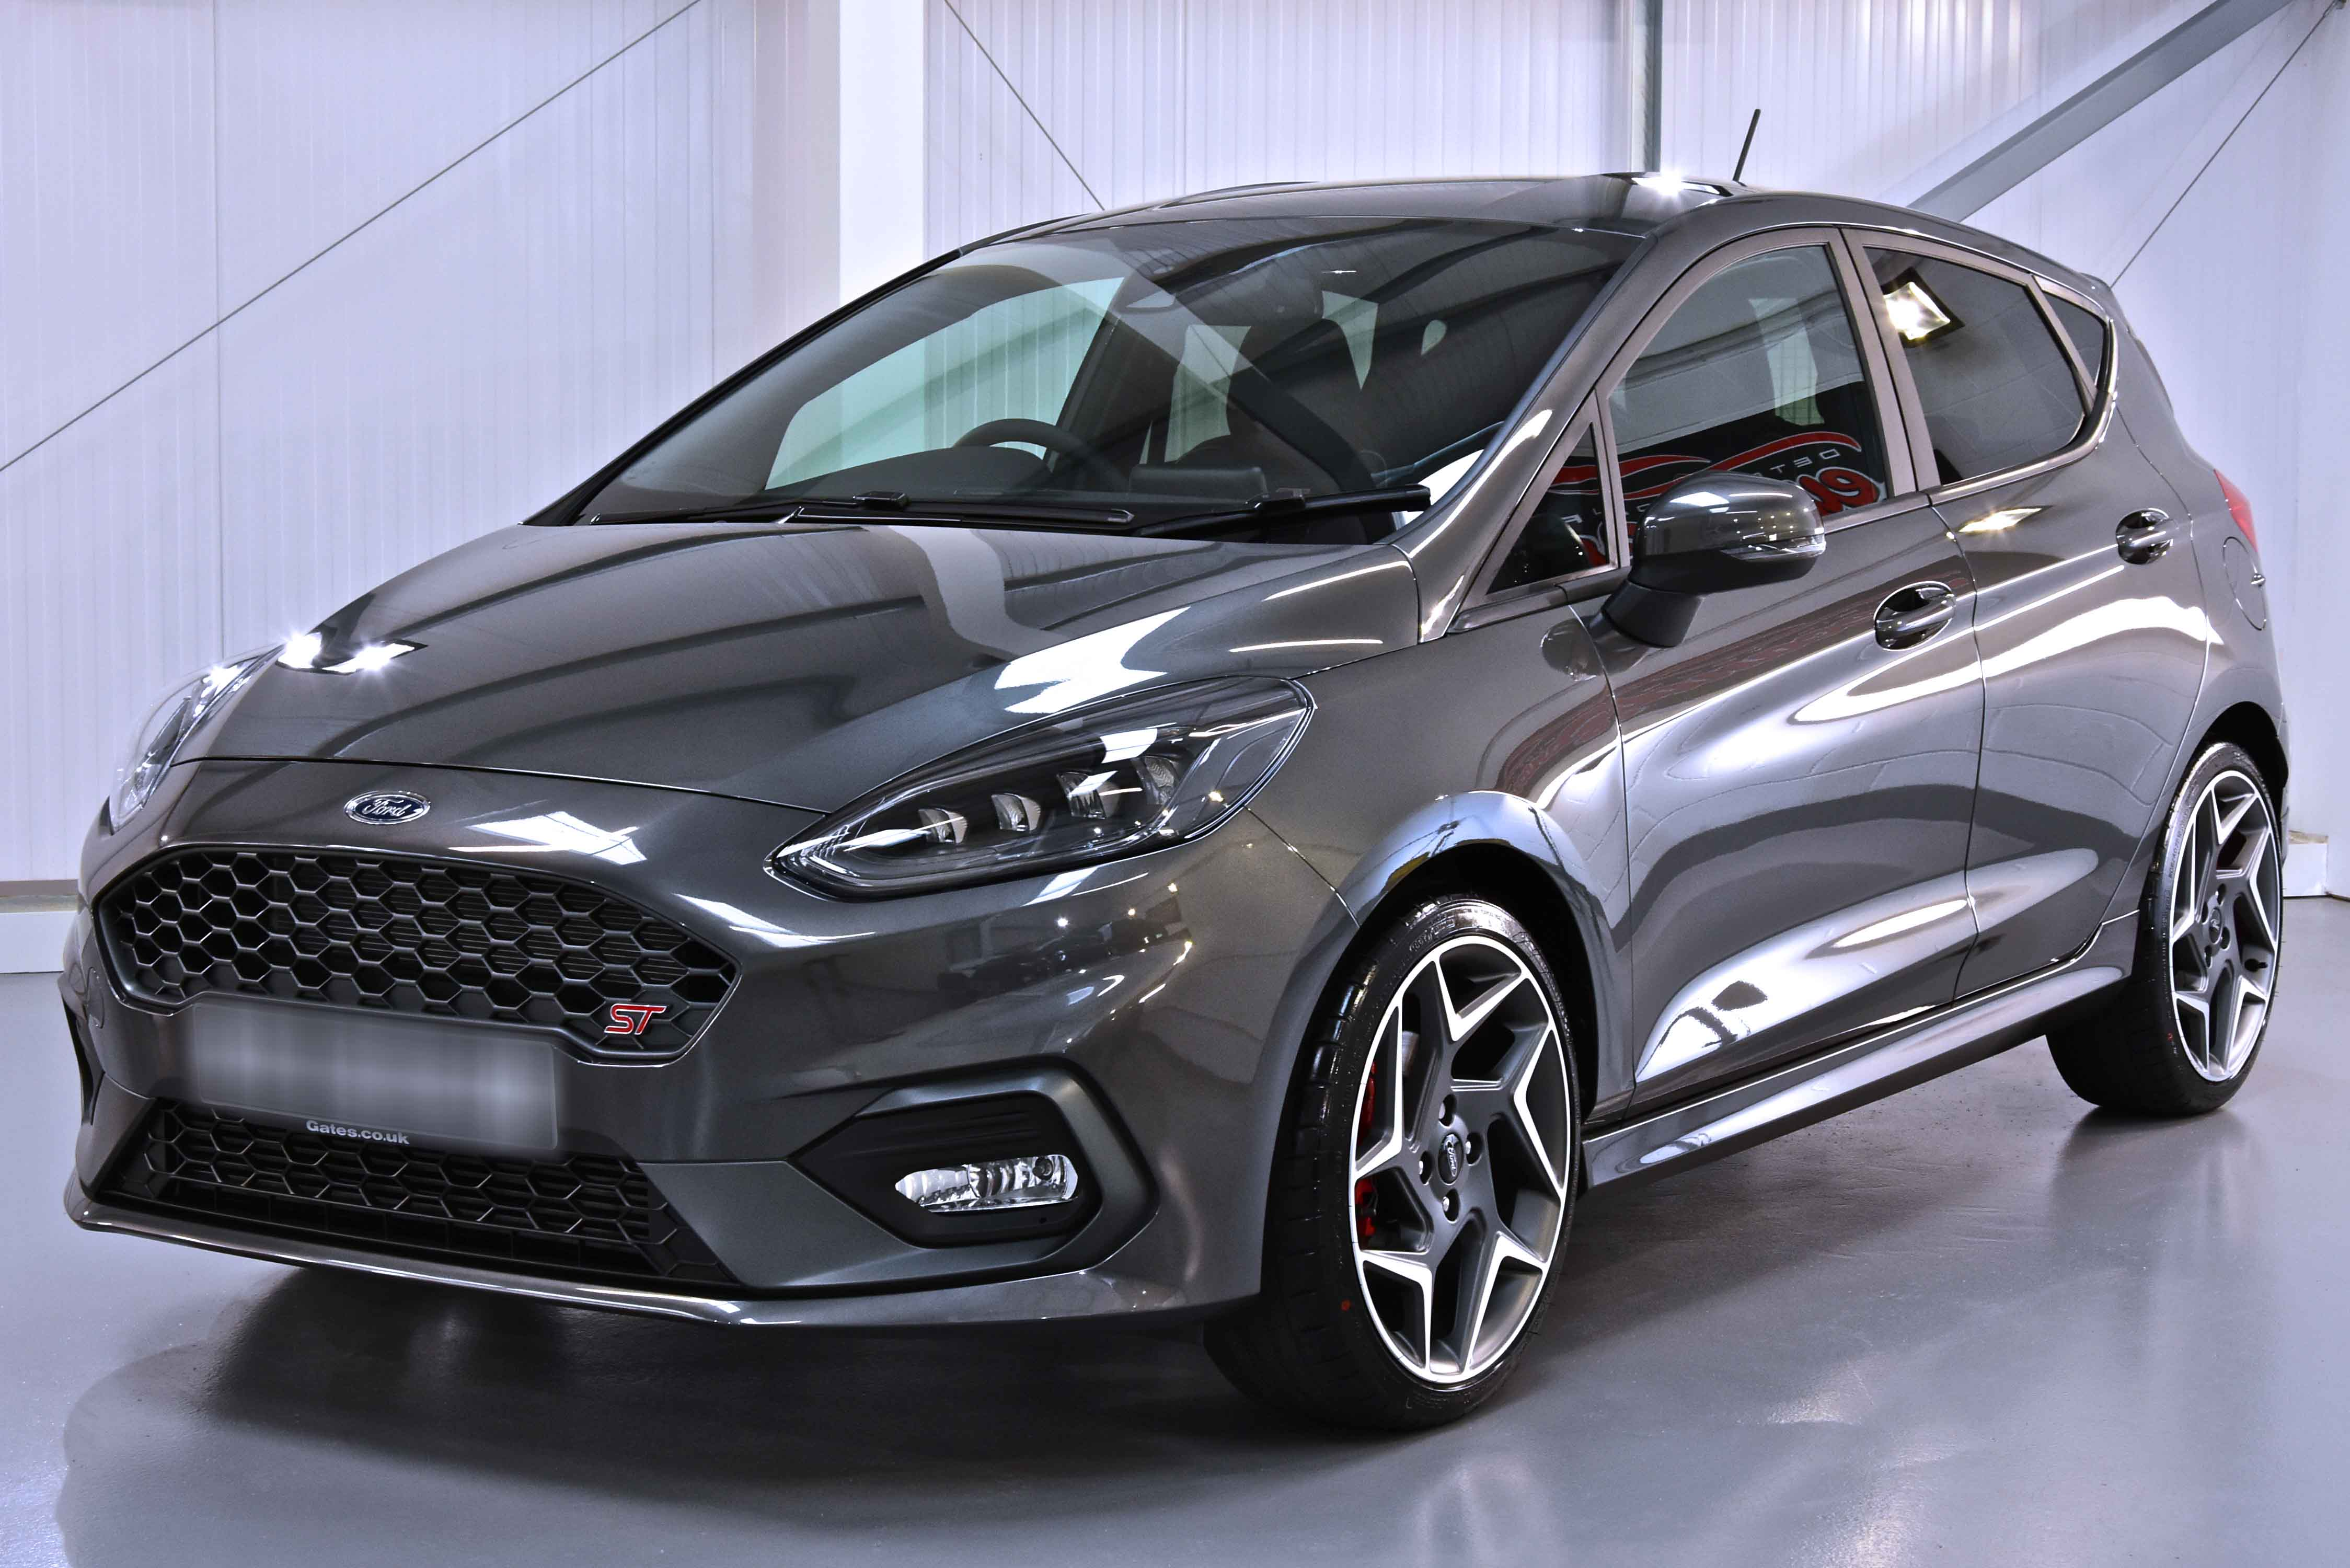 Fiesta ST-3 New Car Enhancement and Protection Detail with Gtechniq Crystal Serum Light